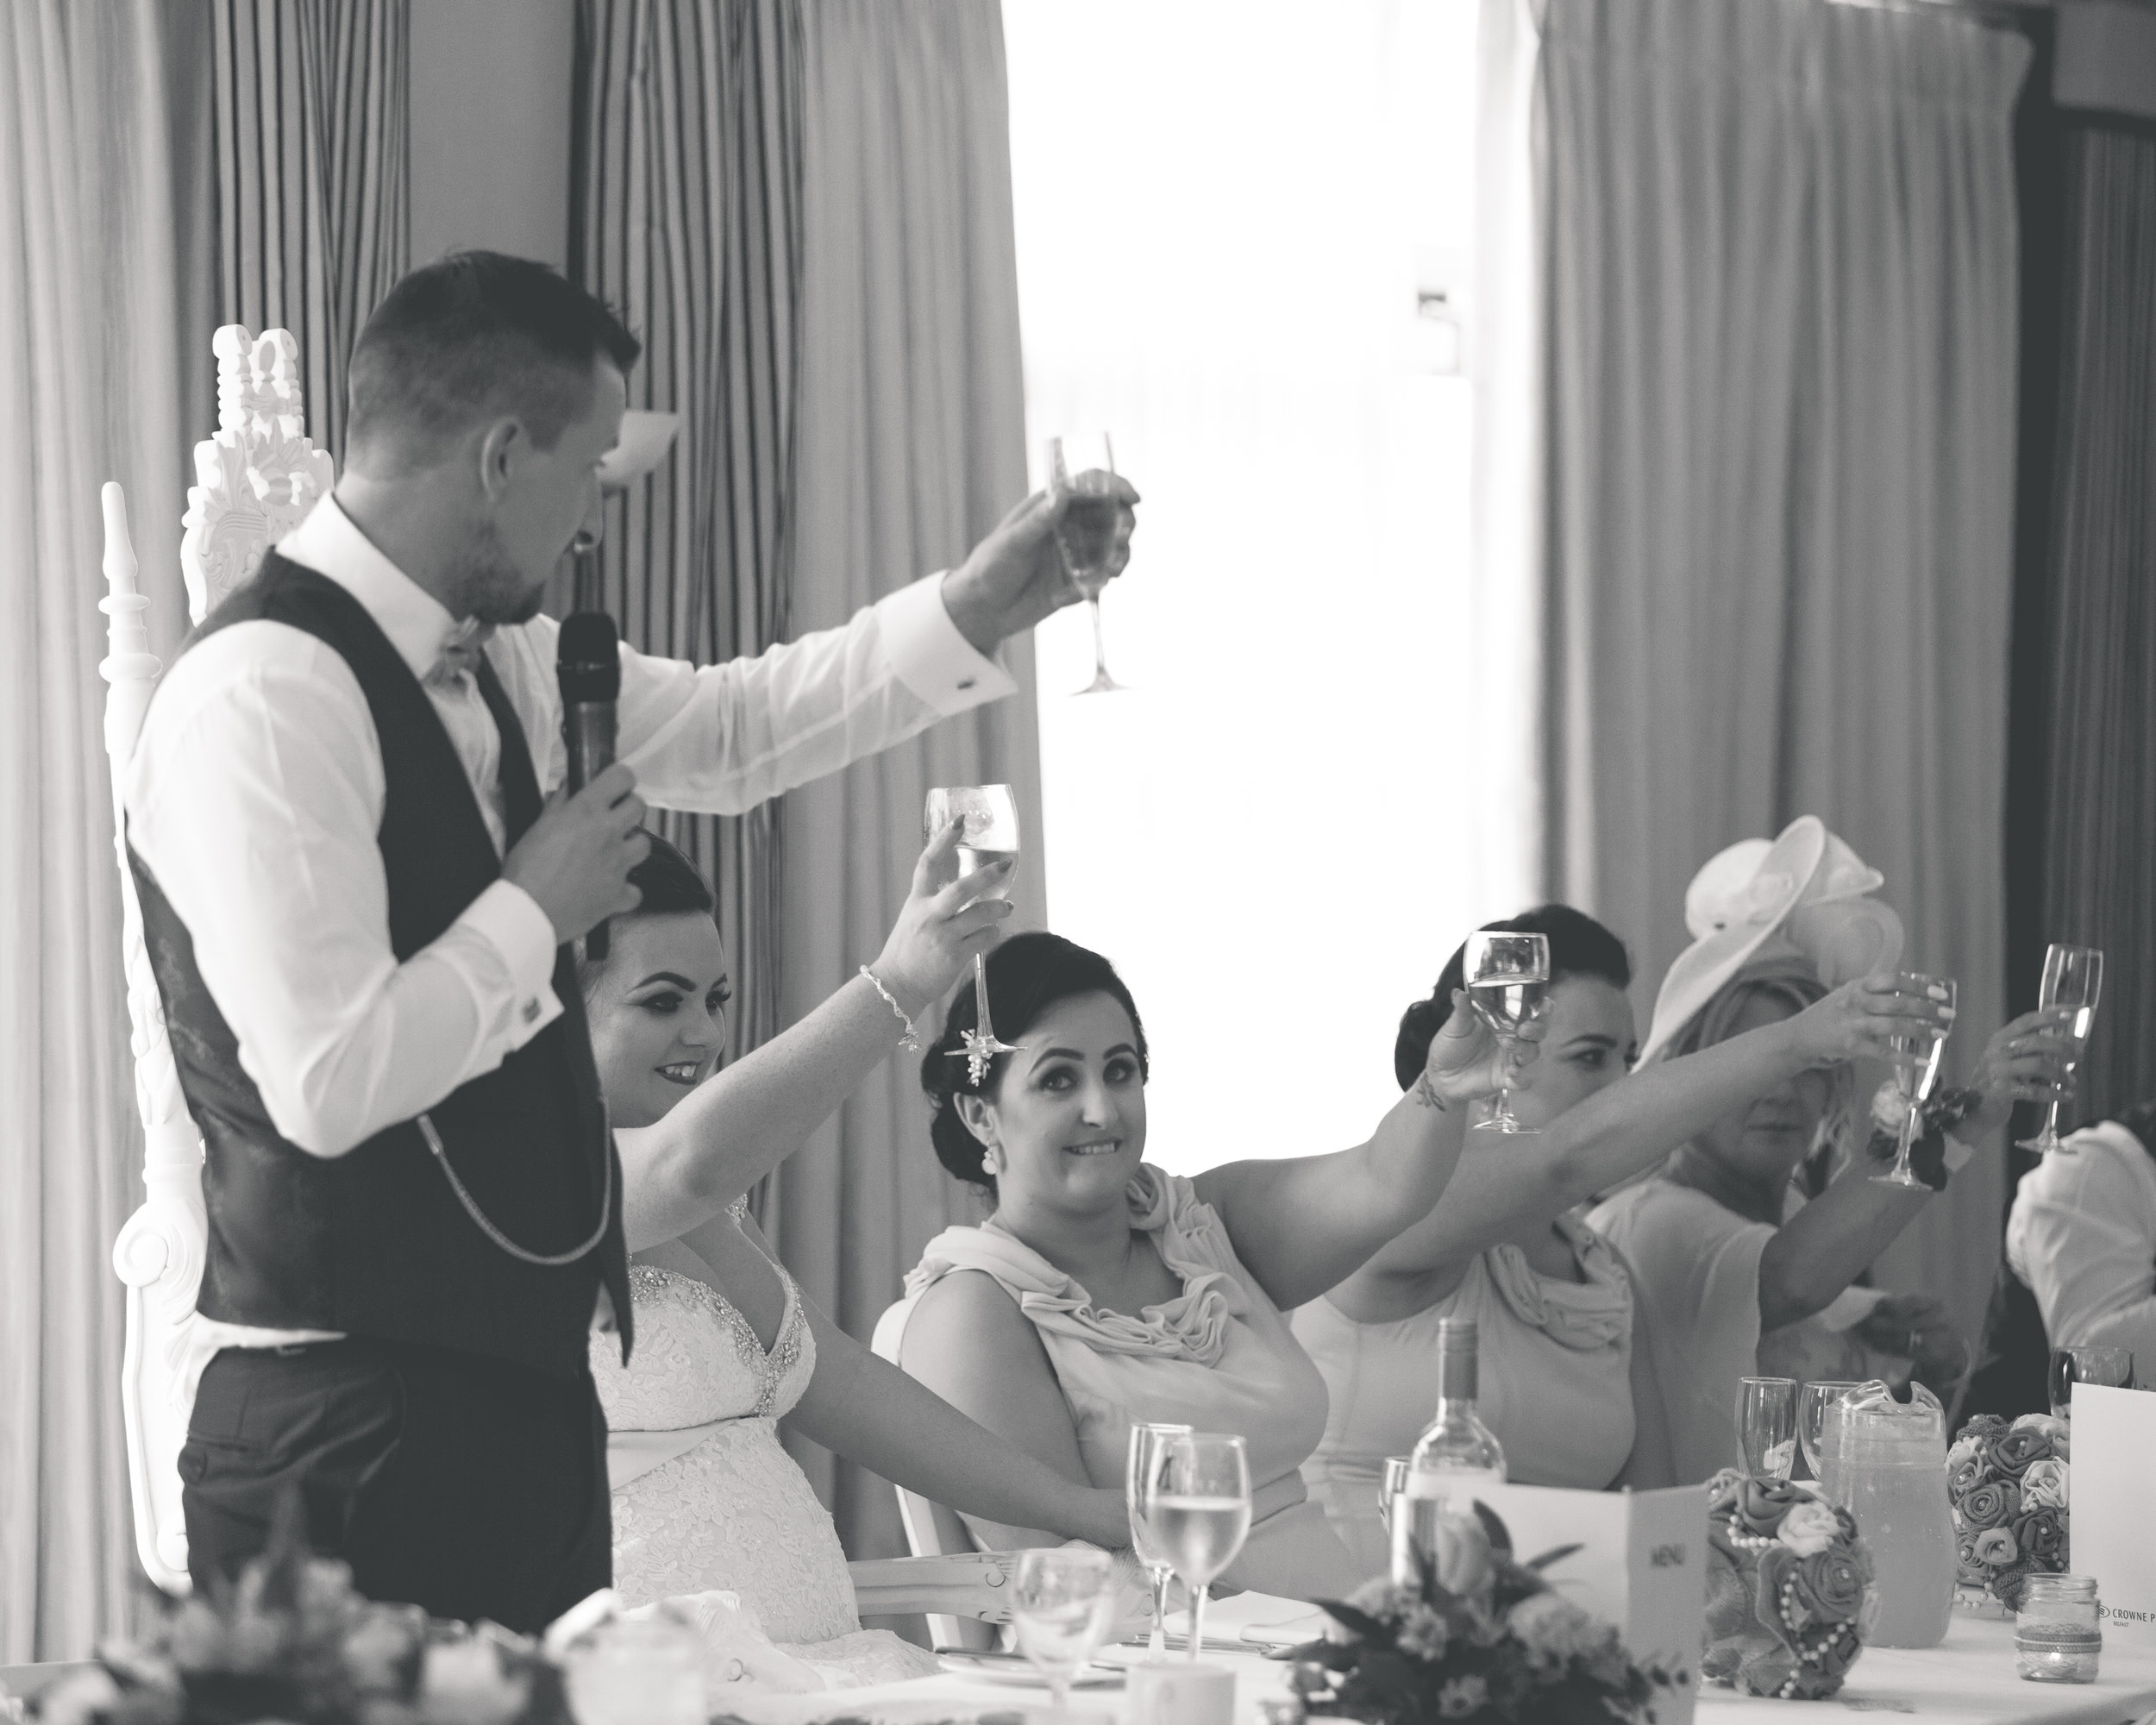 Antoinette & Stephen - Speeches | Brian McEwan Photography | Wedding Photographer Northern Ireland 71.jpg